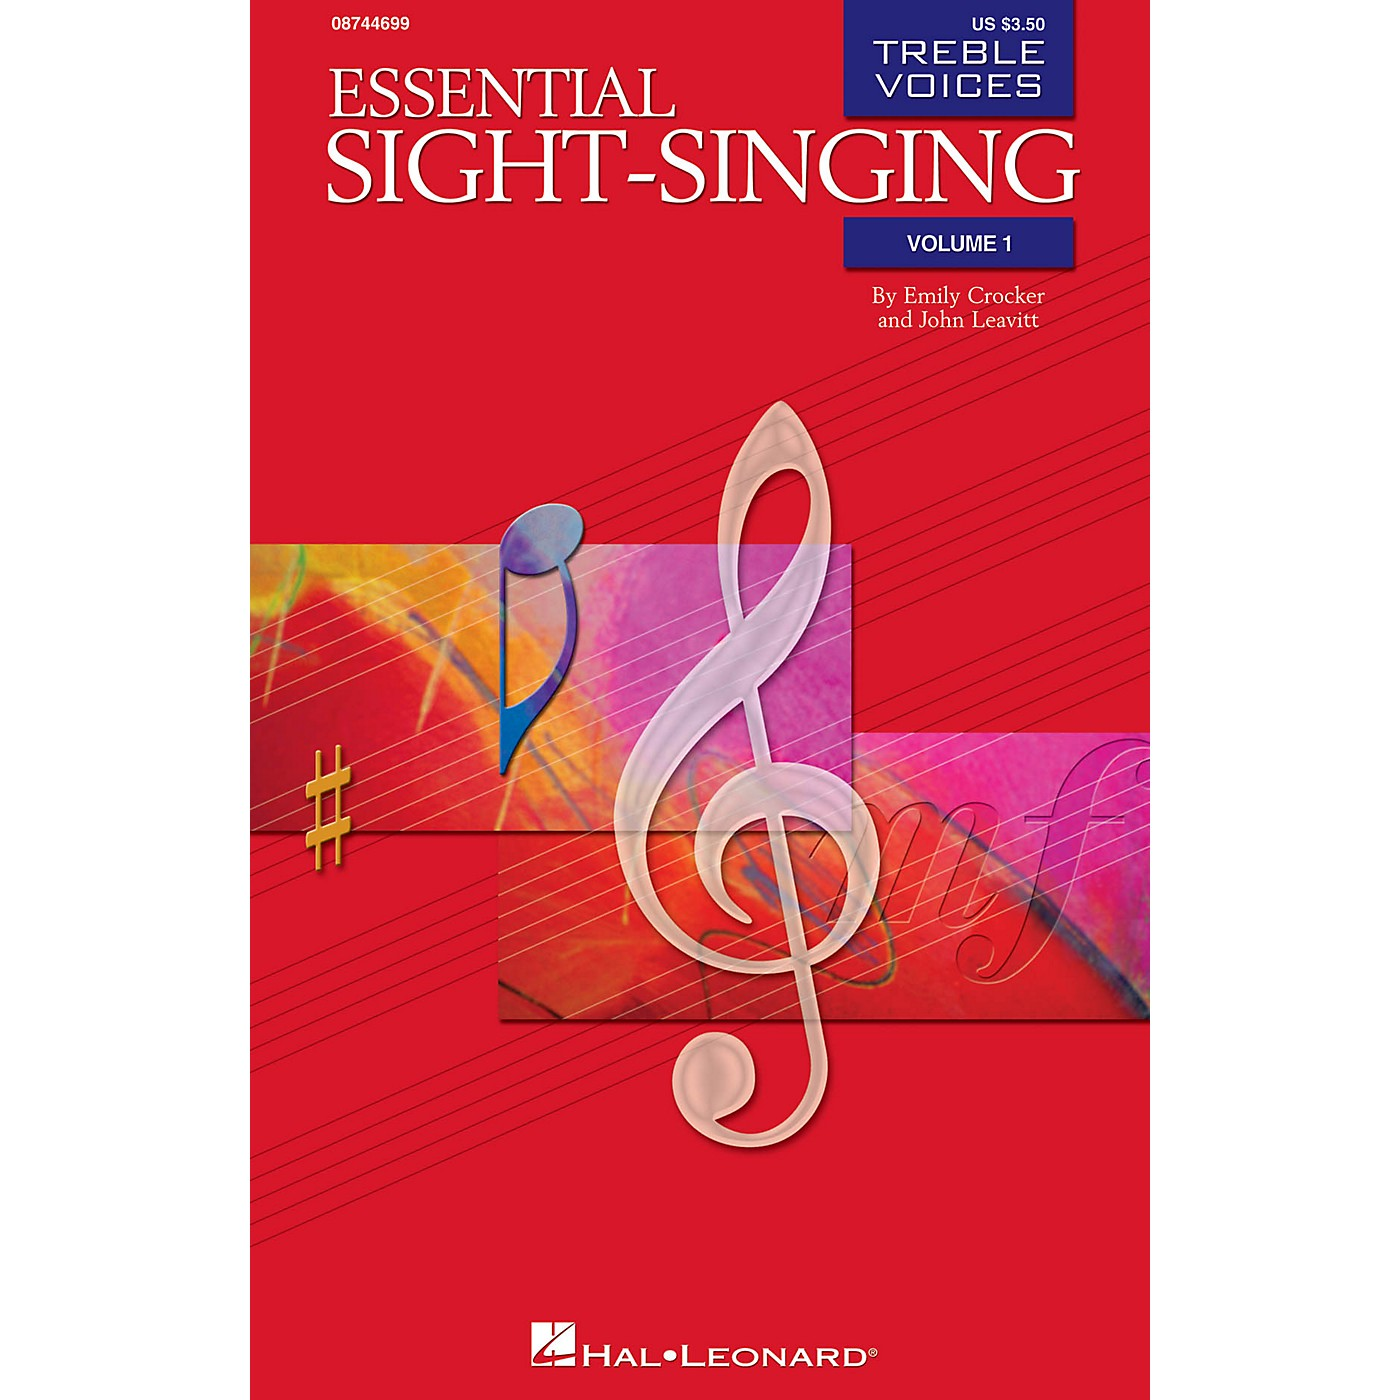 Hal Leonard Essential Sight-Singing Vol. 1 Treble Voices (Treble Voices Book Volume 1) SA thumbnail